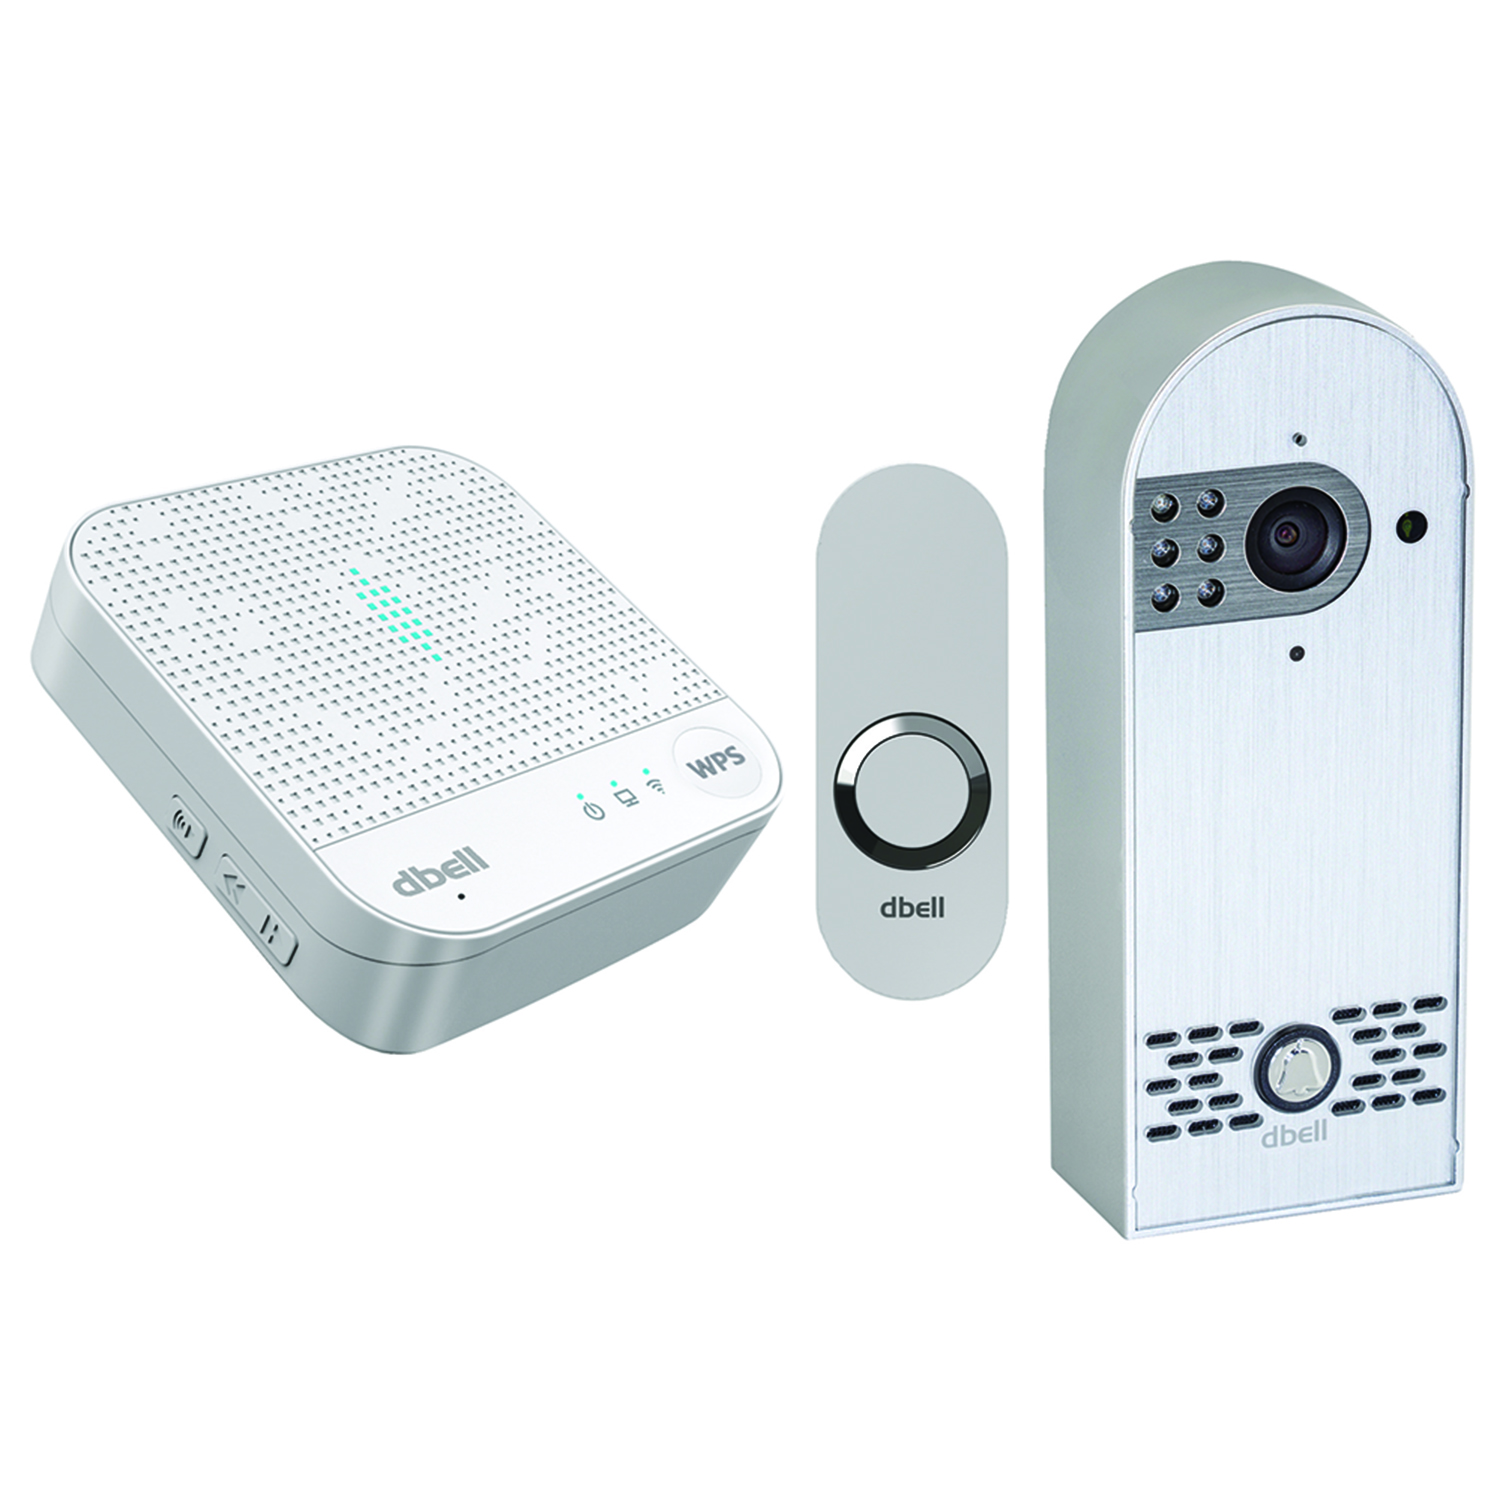 Dbell DB-HD-LIVE-S Video Doorbell Silver & DB-WRAB-W Wi-Fi Extender Doorbell by dbell